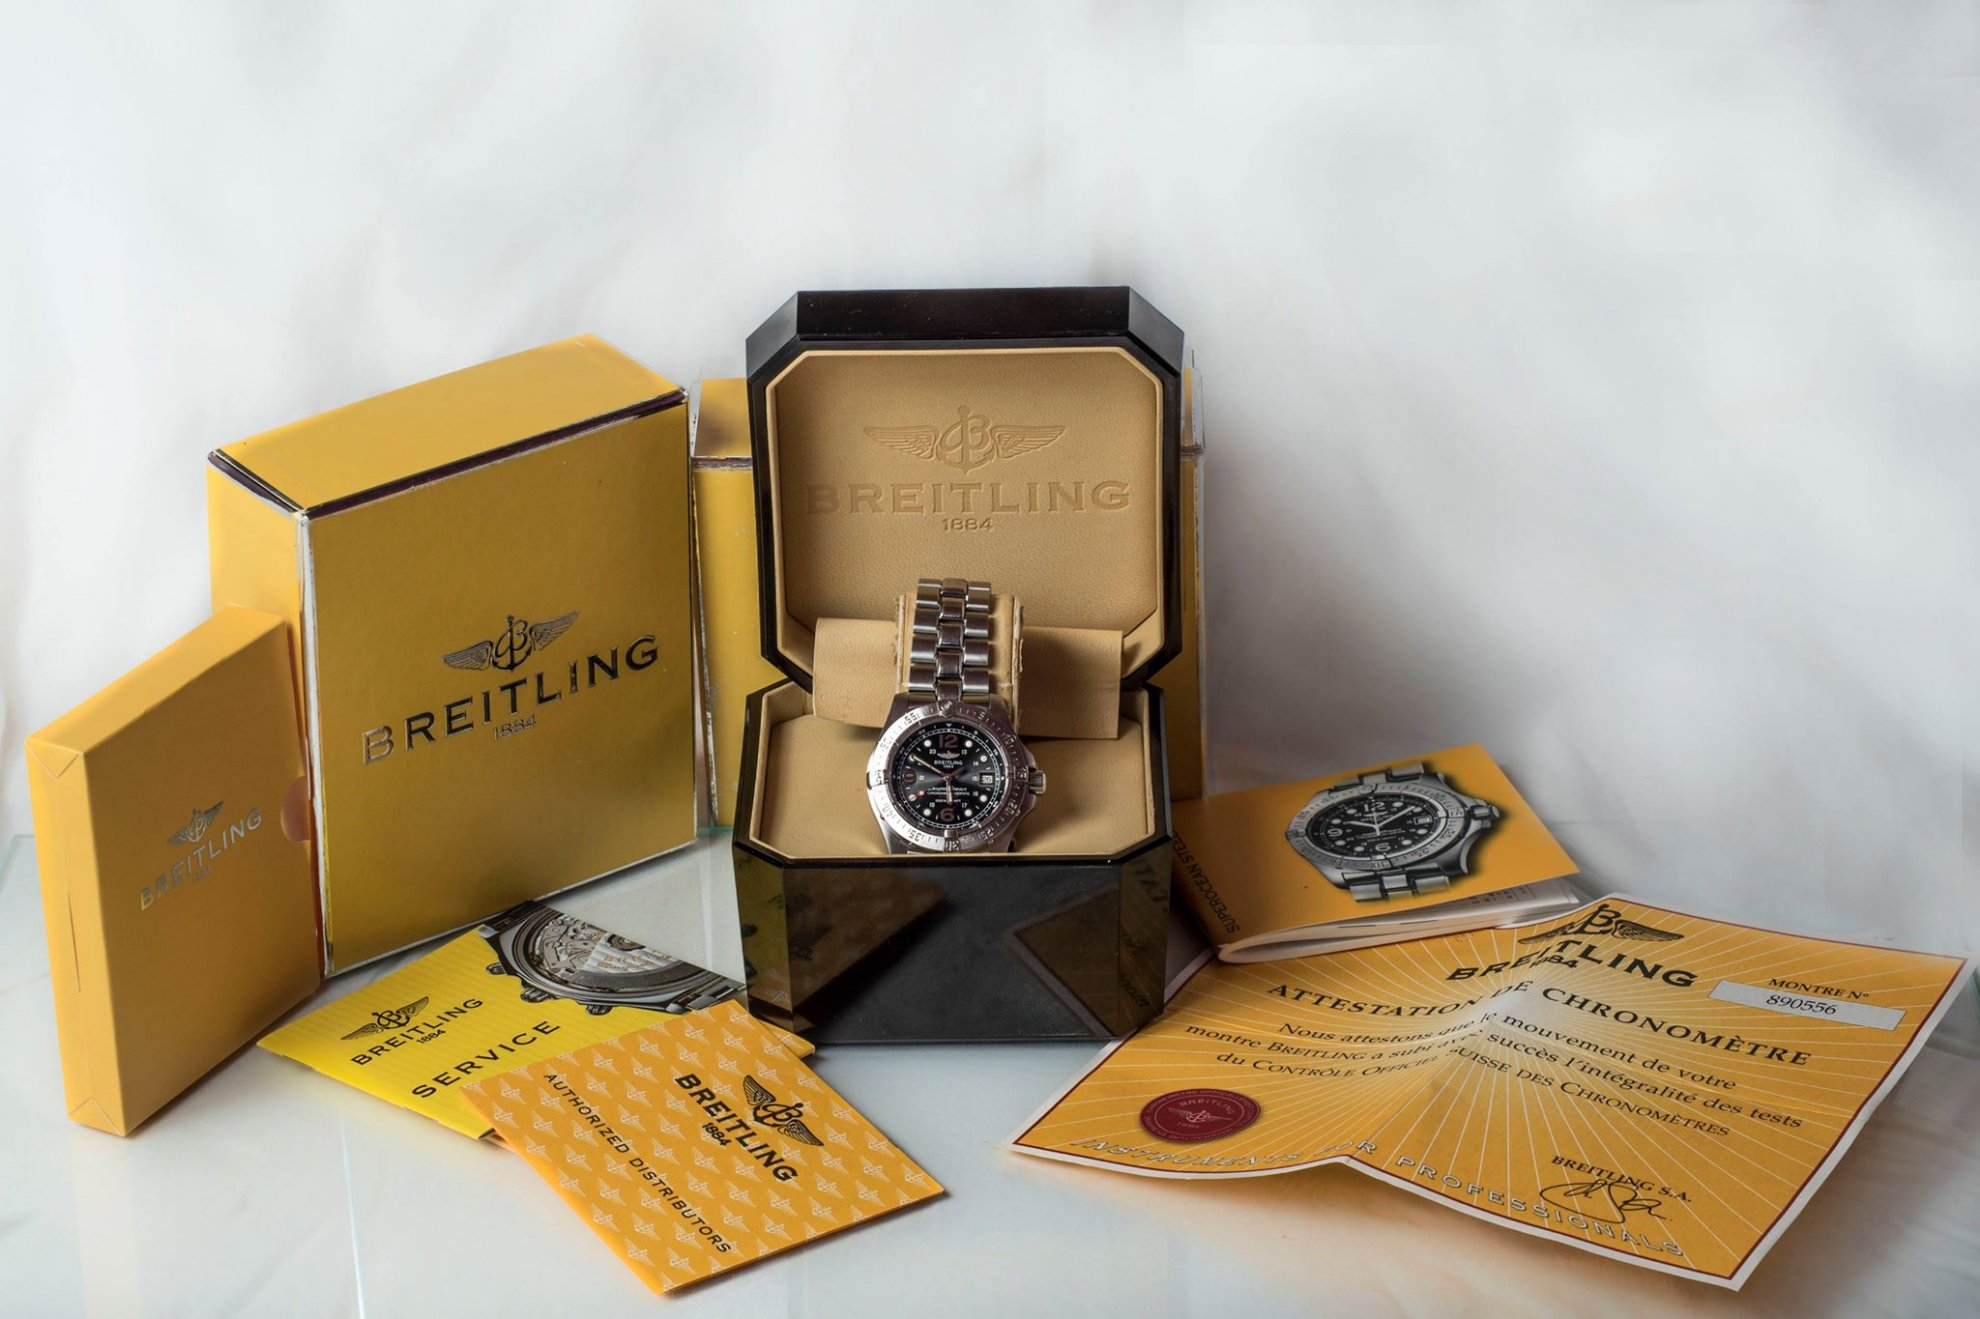 Eladó Breitling Bentley Gmt racing green limited edition óra